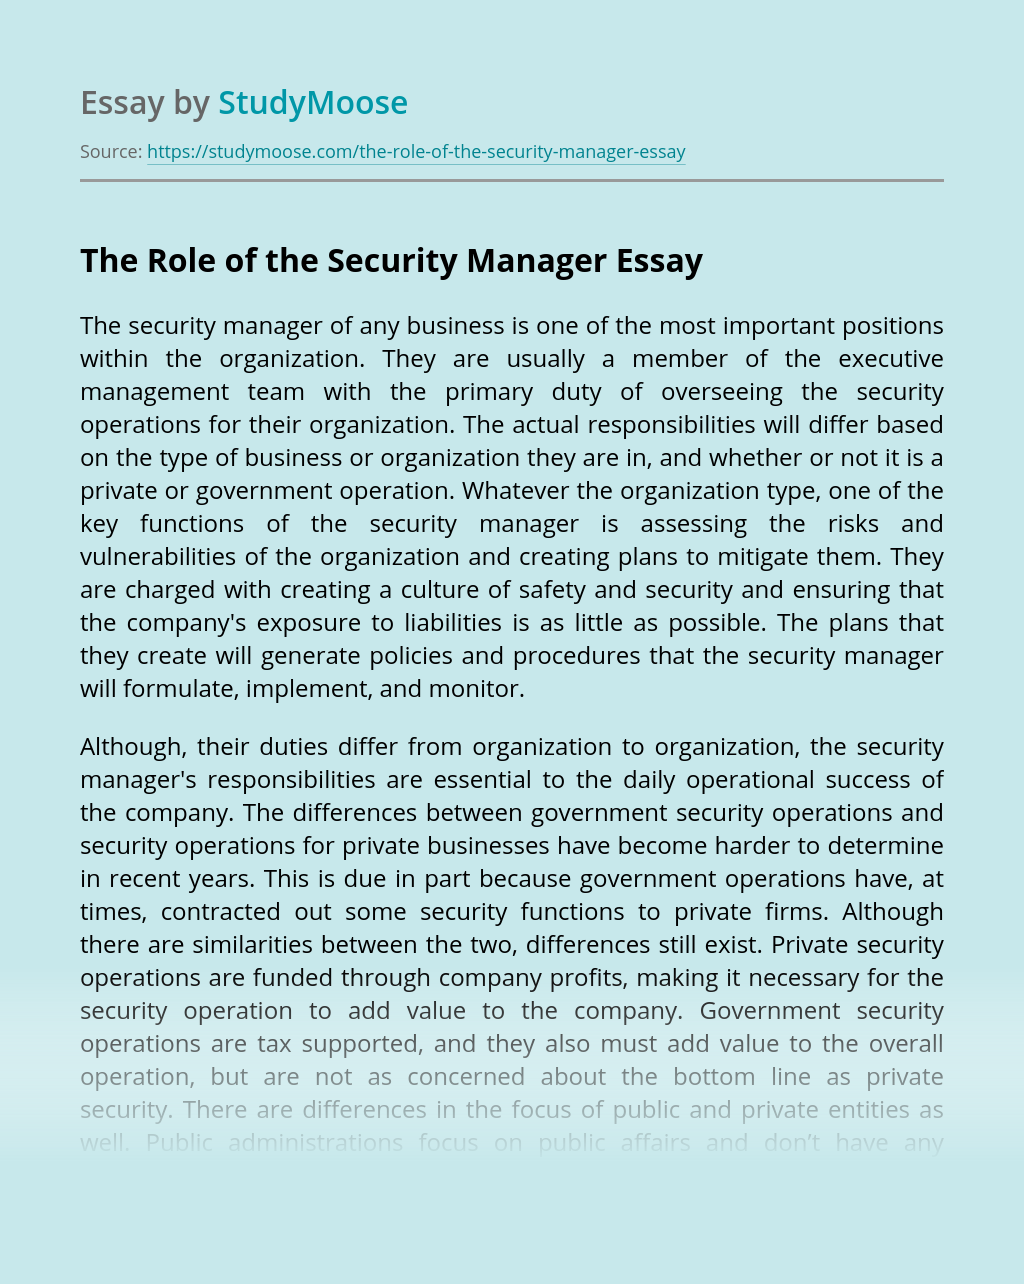 The Role of the Security Manager